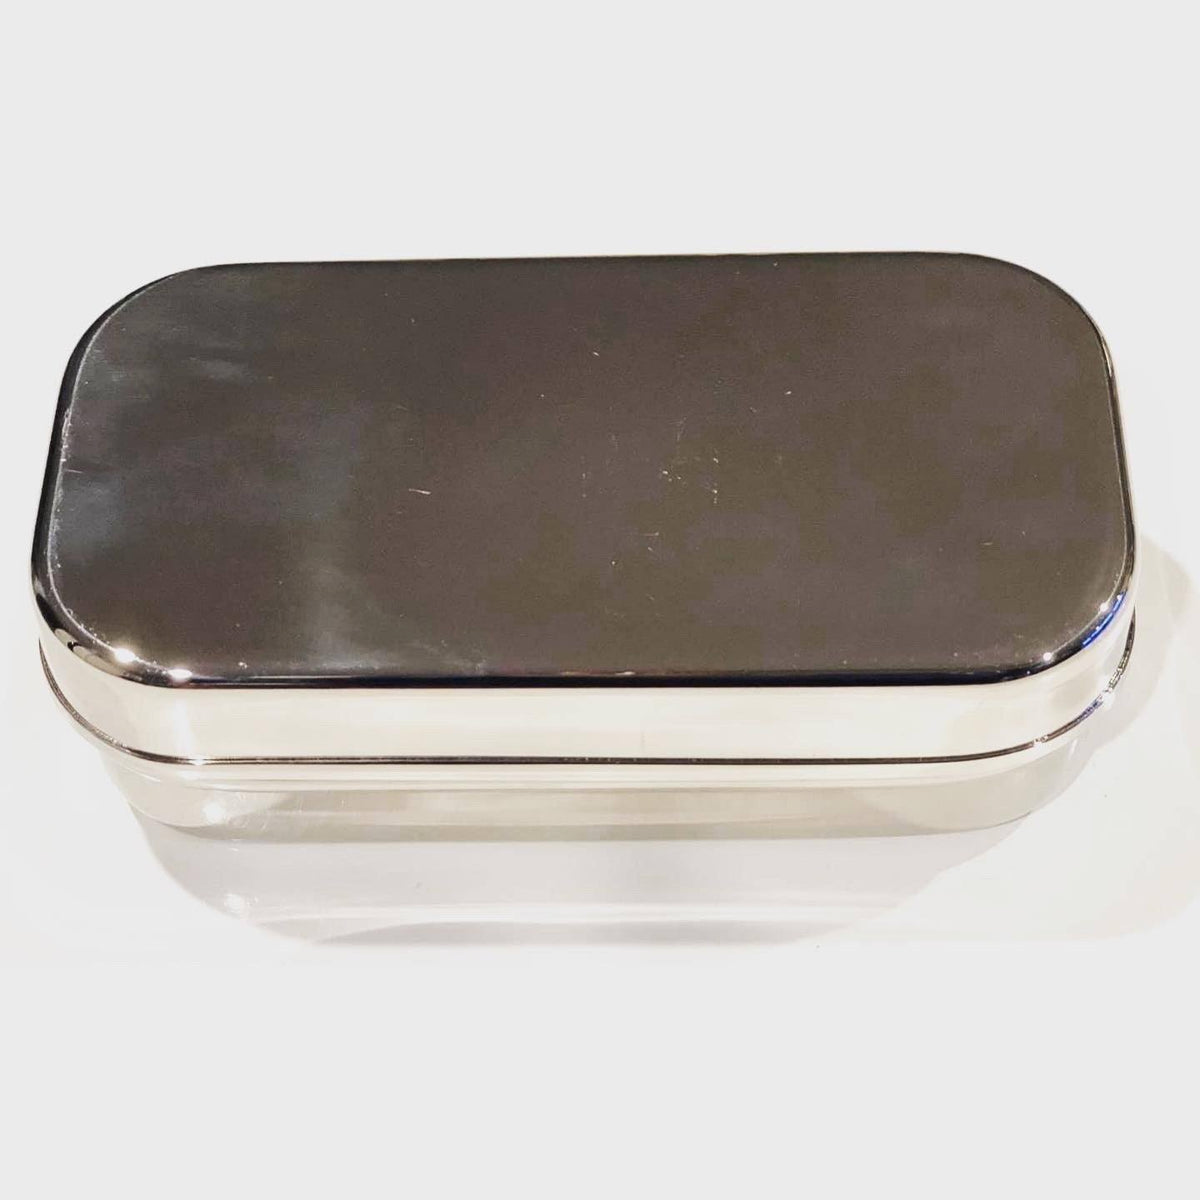 Stainless Steel Rectangle Snack Container